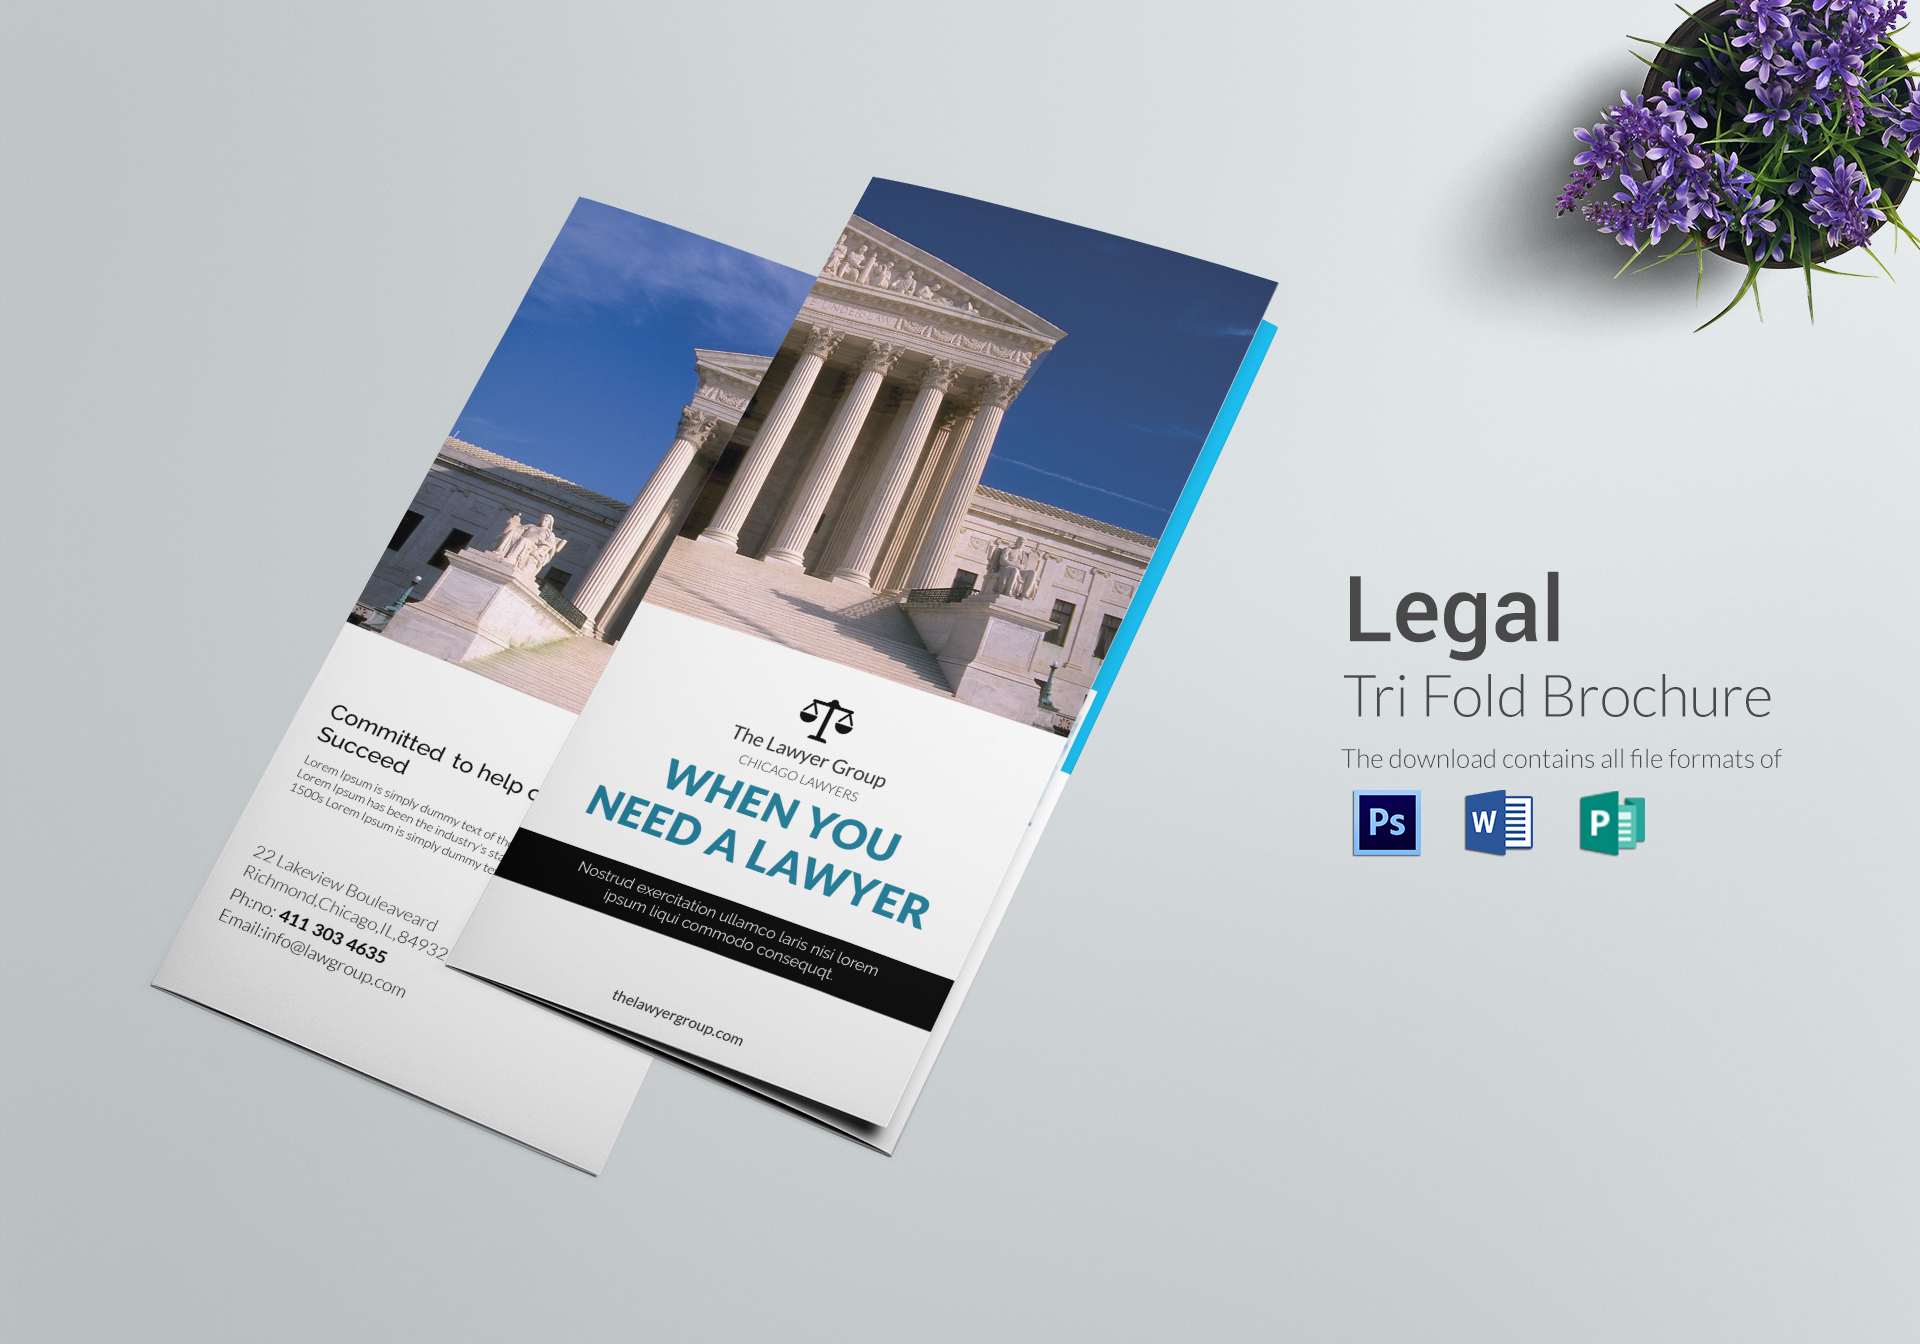 tri fold brochure templates - legal brochure tri fold design template in psd word